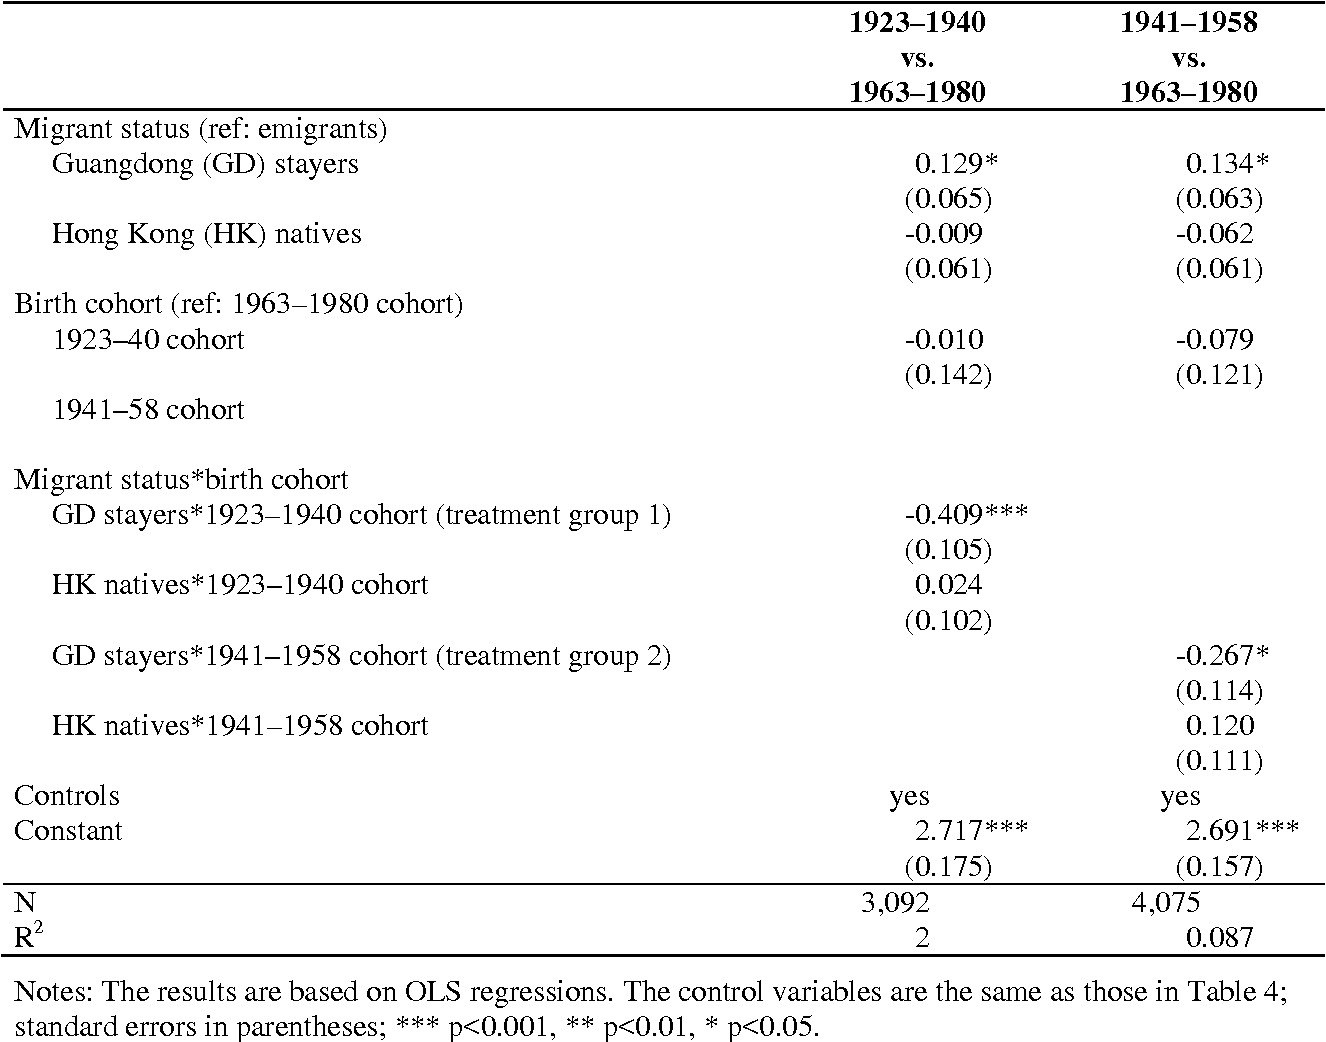 Table 5. Difference-In-Differences Estimates of Famine Effects on Self-Rated Health